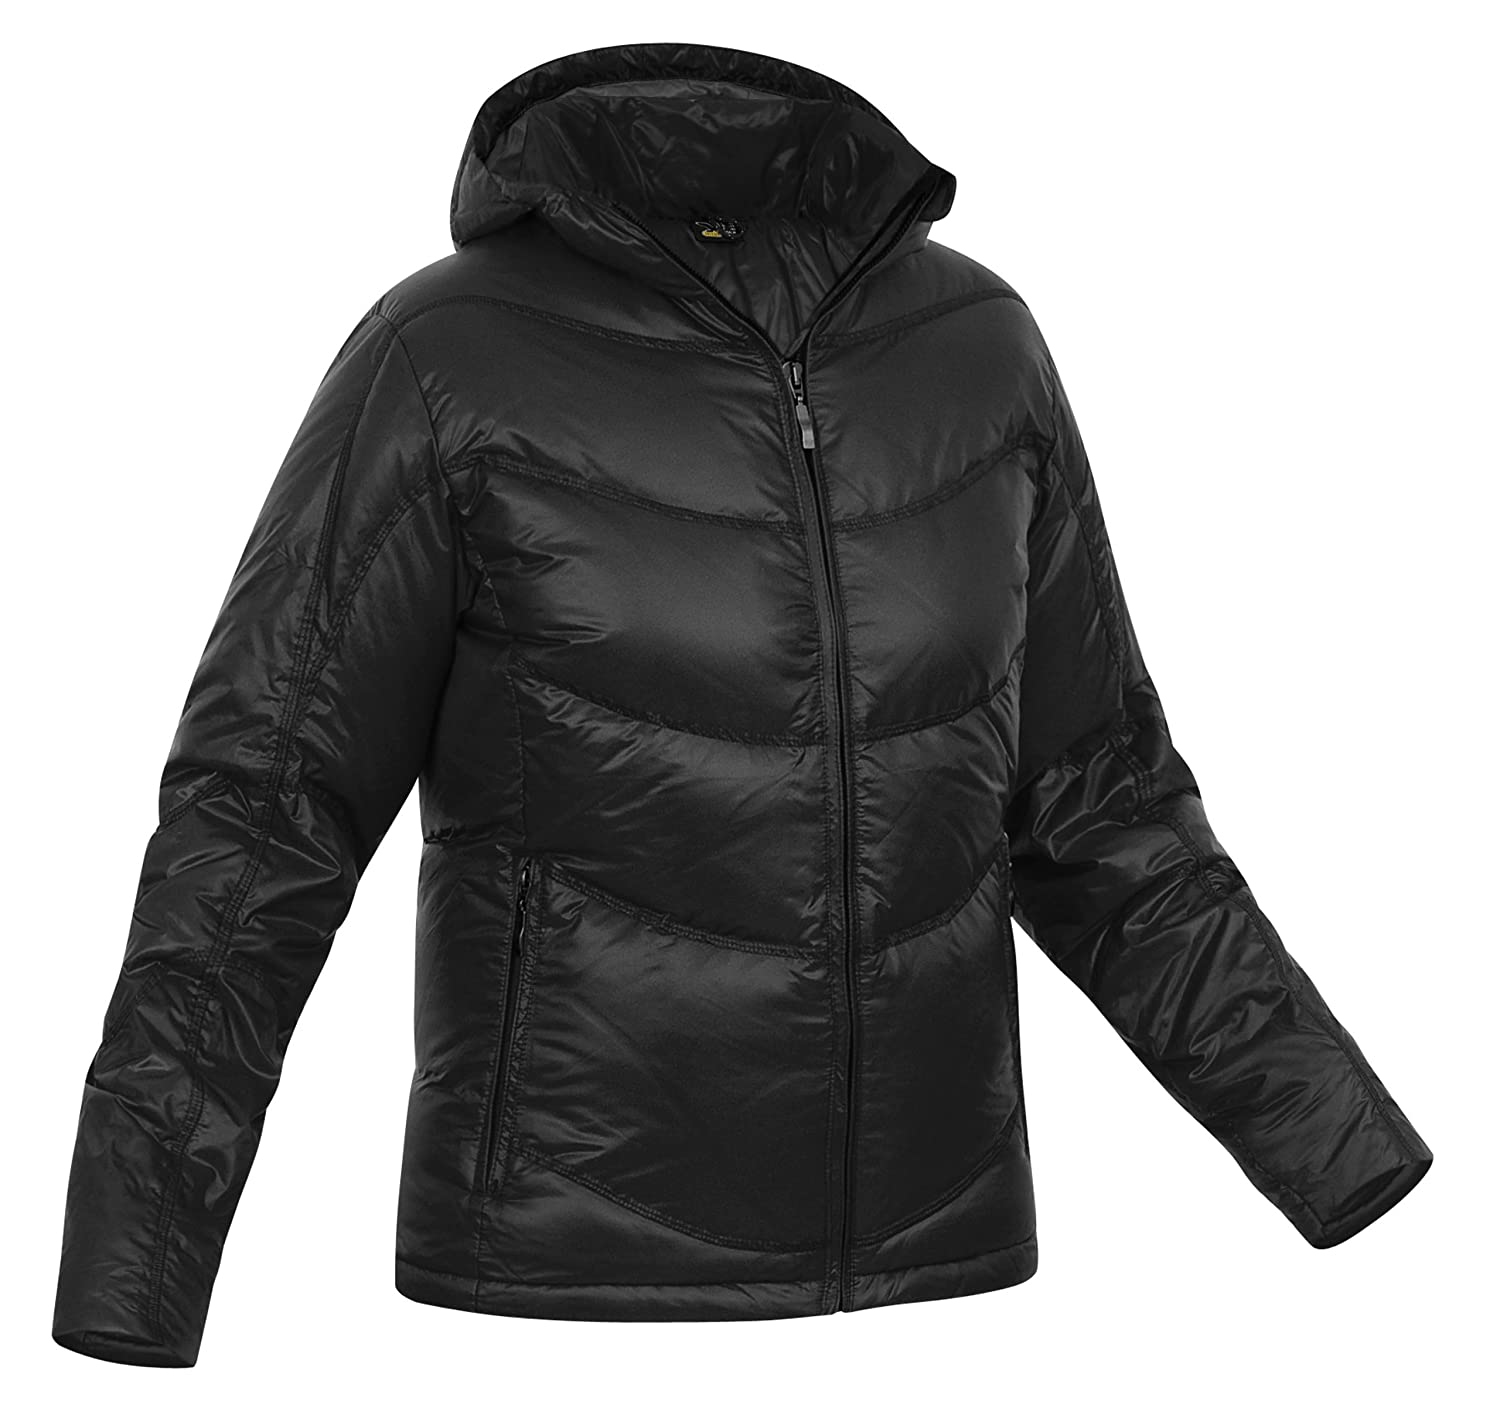 SALEWA Damen Jacke Cold Fighter DWN W JKT online kaufen